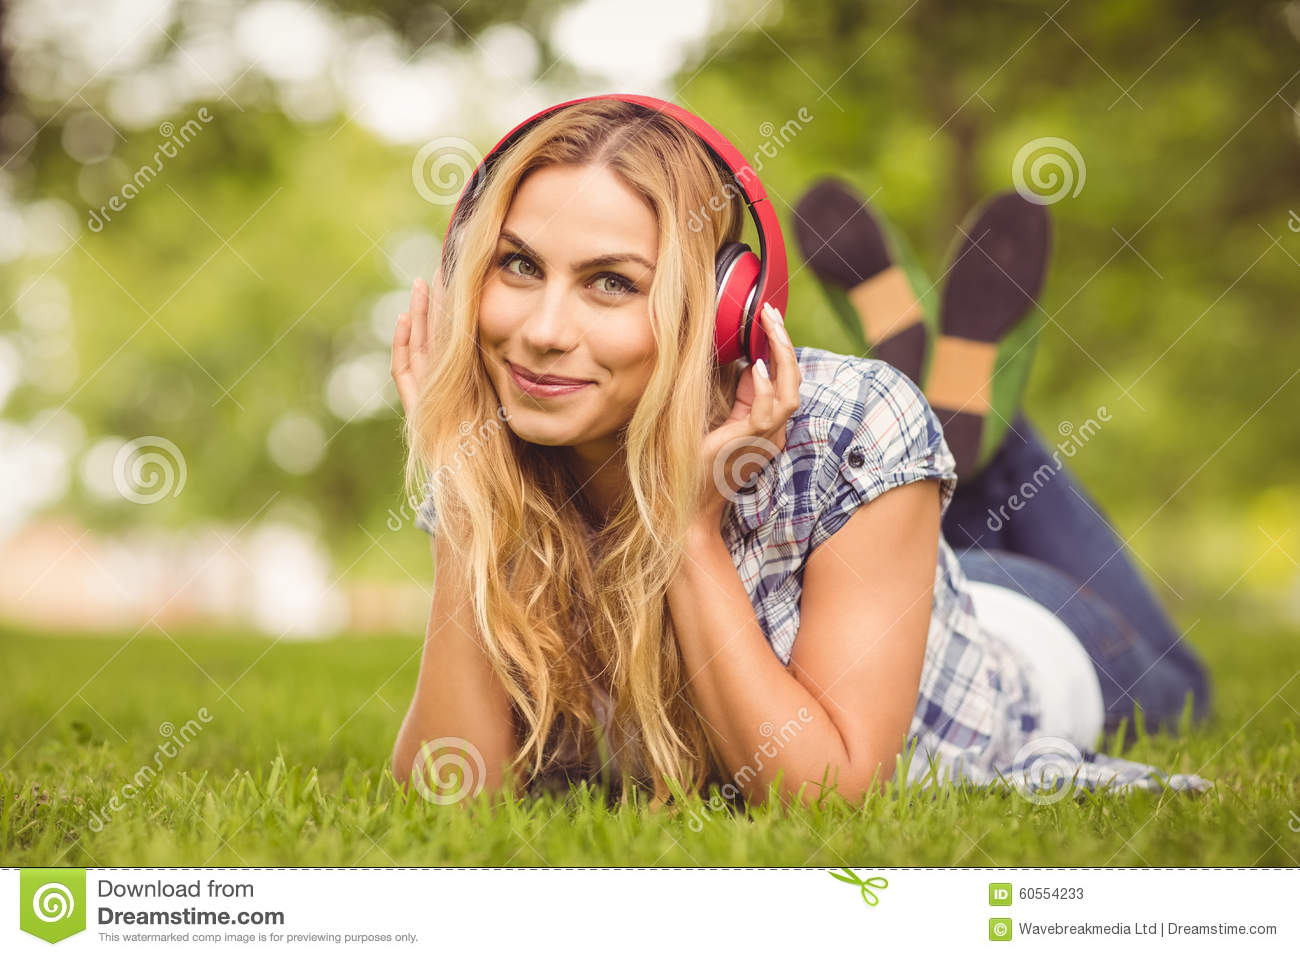 Full length portrait of cheerful woman listening to music